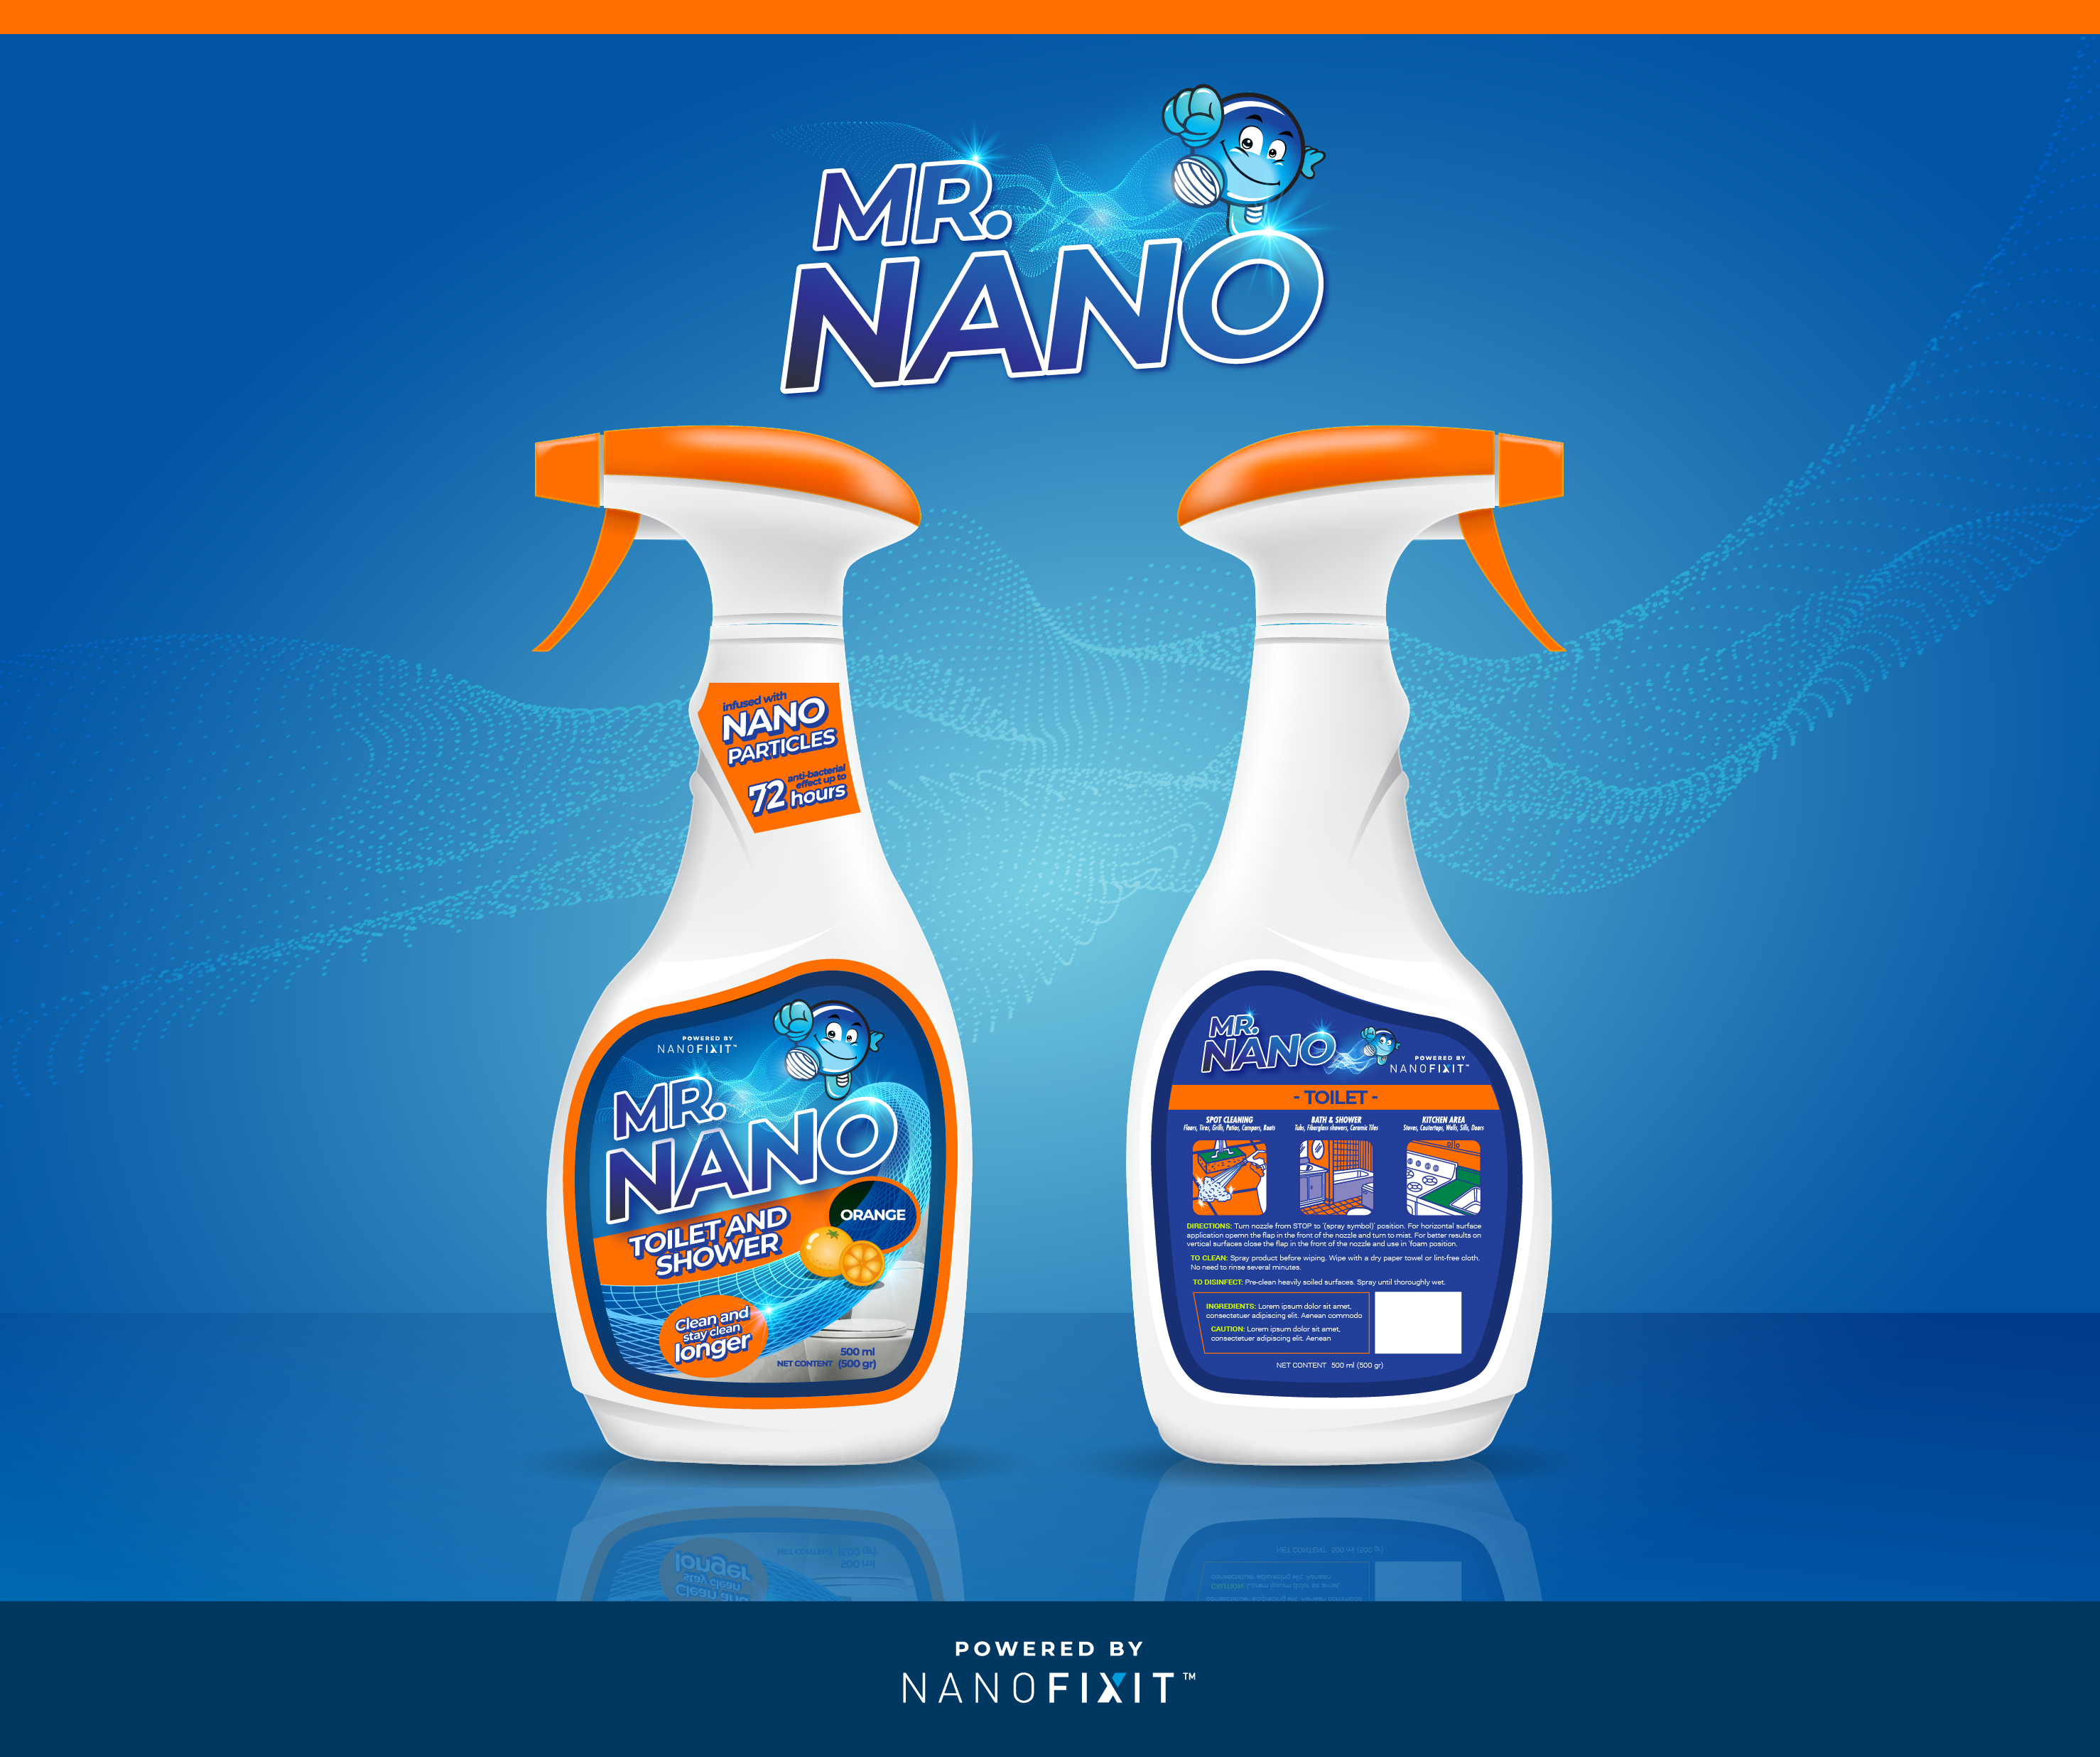 Mr. Nano surface cleaner